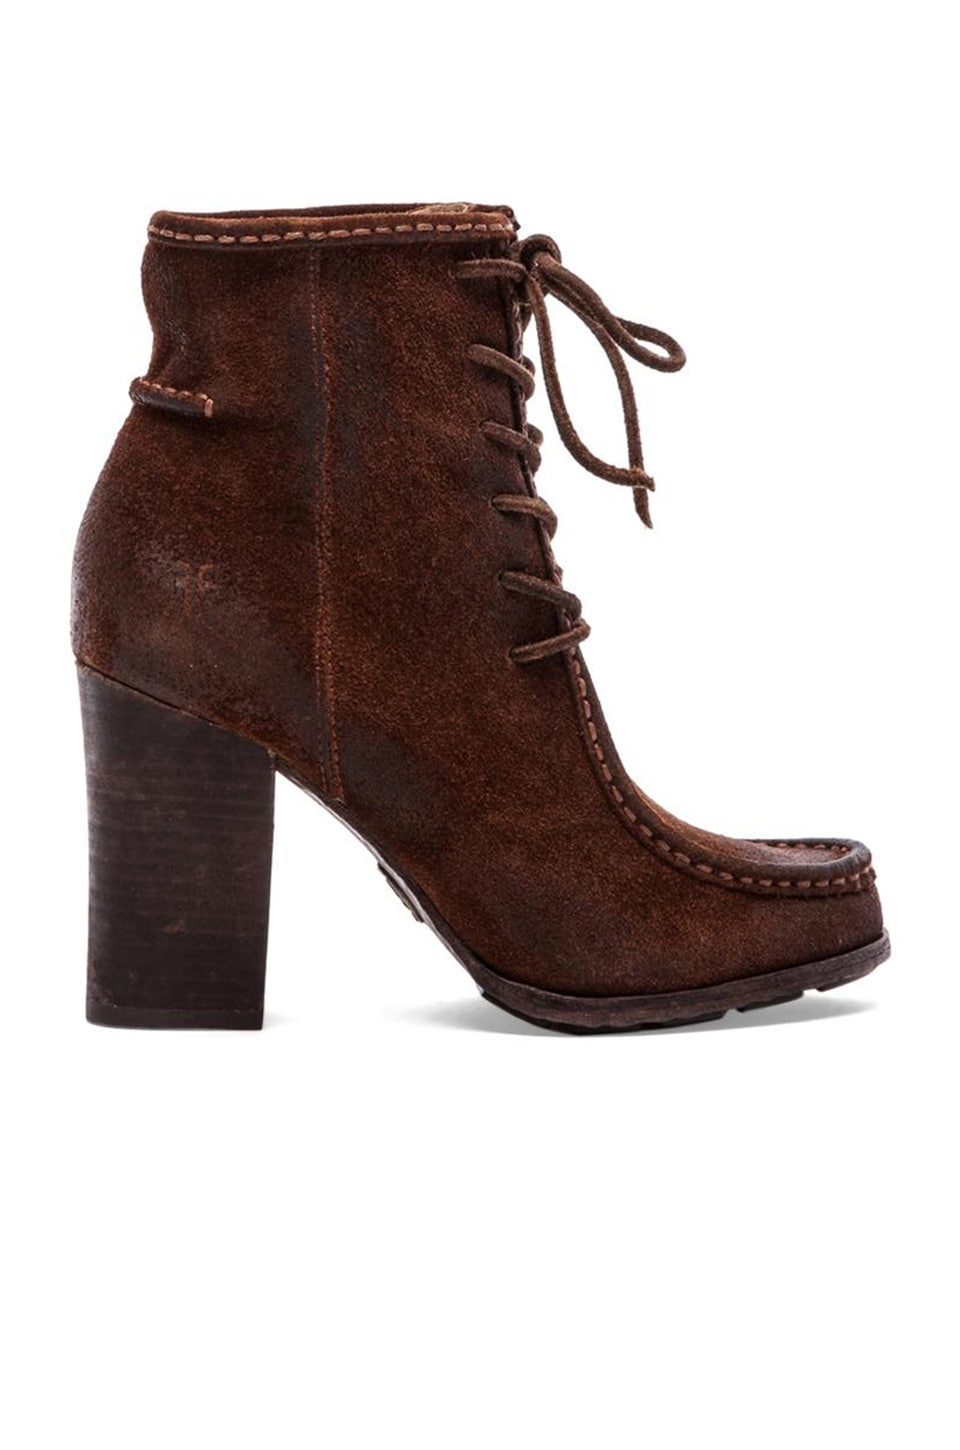 Frye Parker Moc Short Boot in Brown